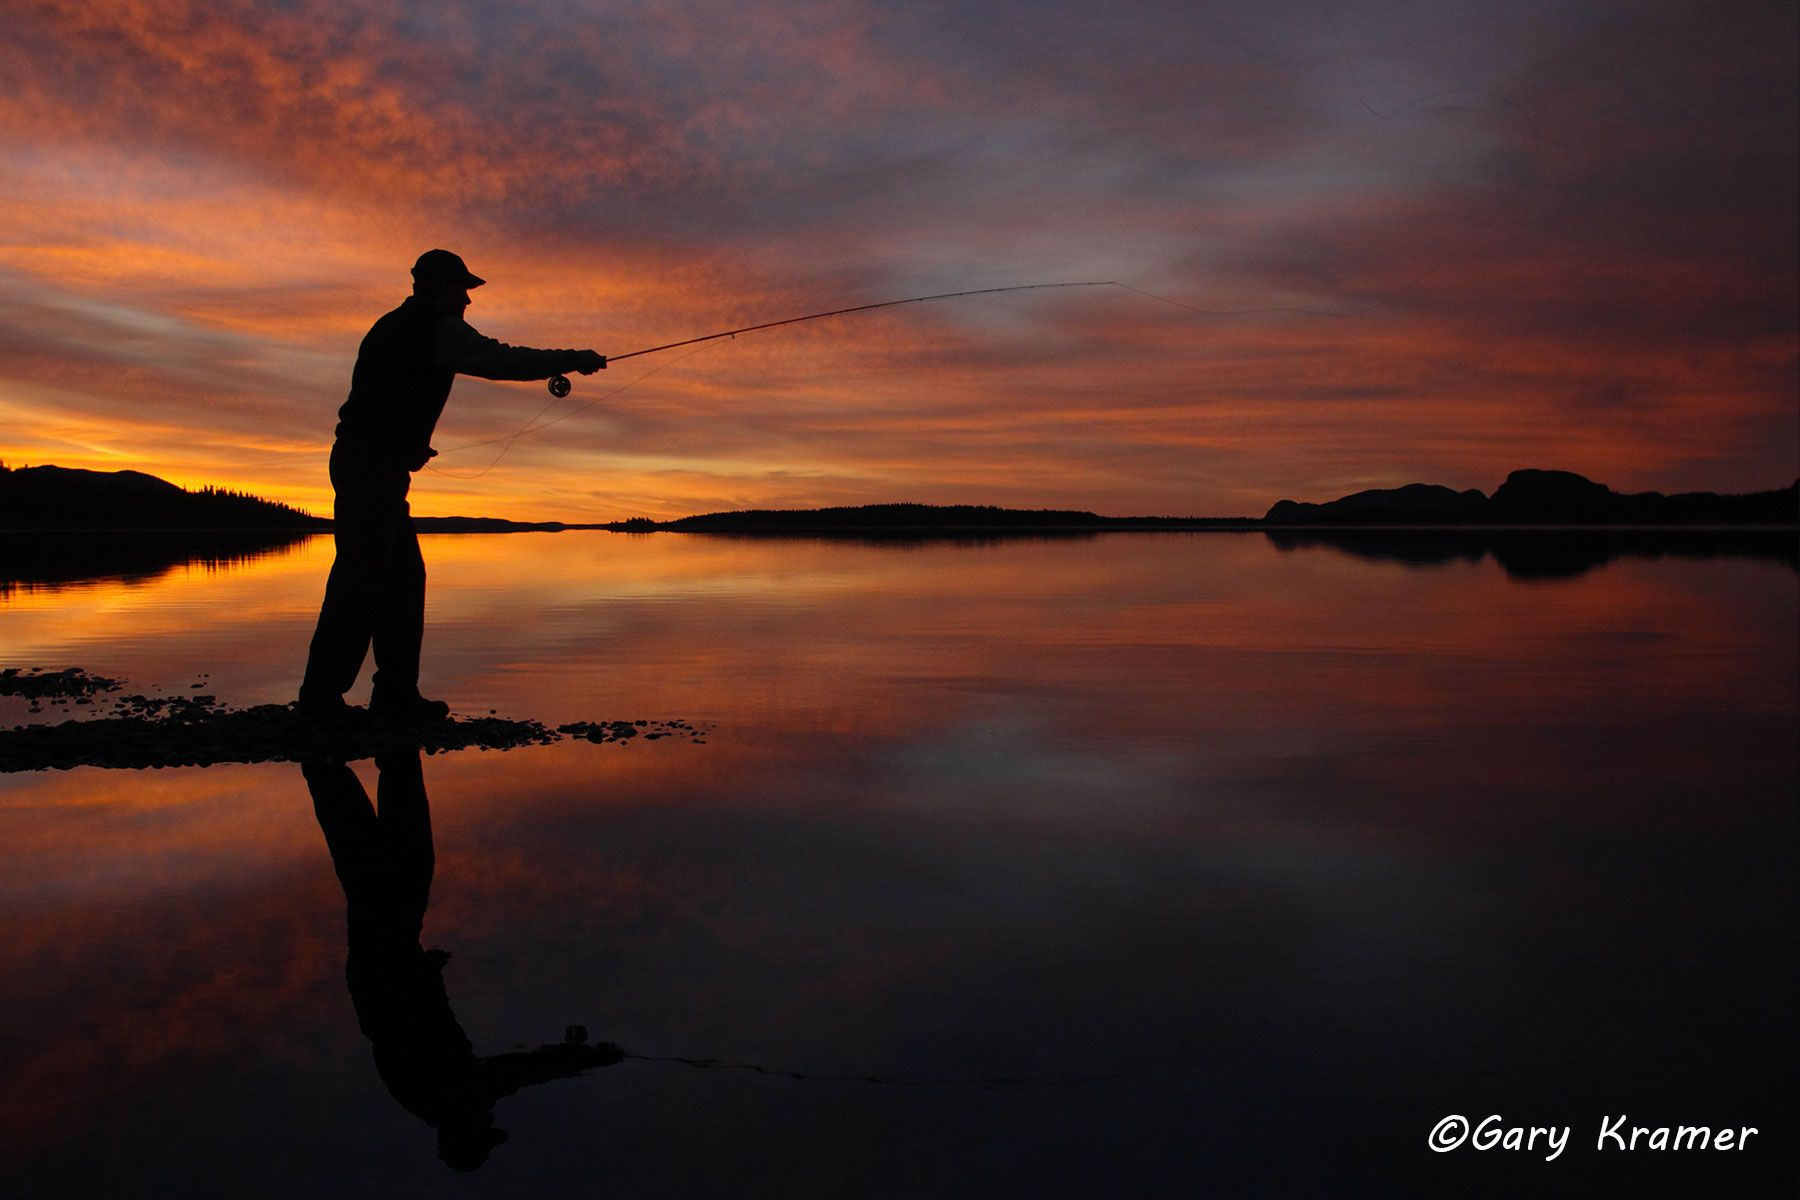 Fly Fishing at Sunset/Sunrise - GFS#266d